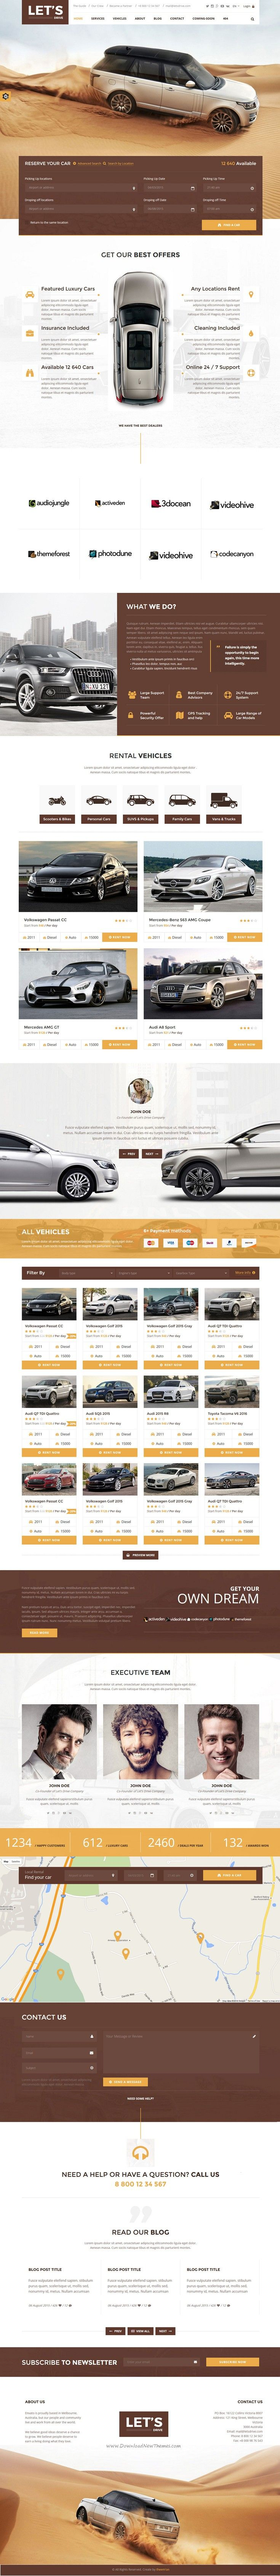 Let s drive amazing car rental sale html5 template